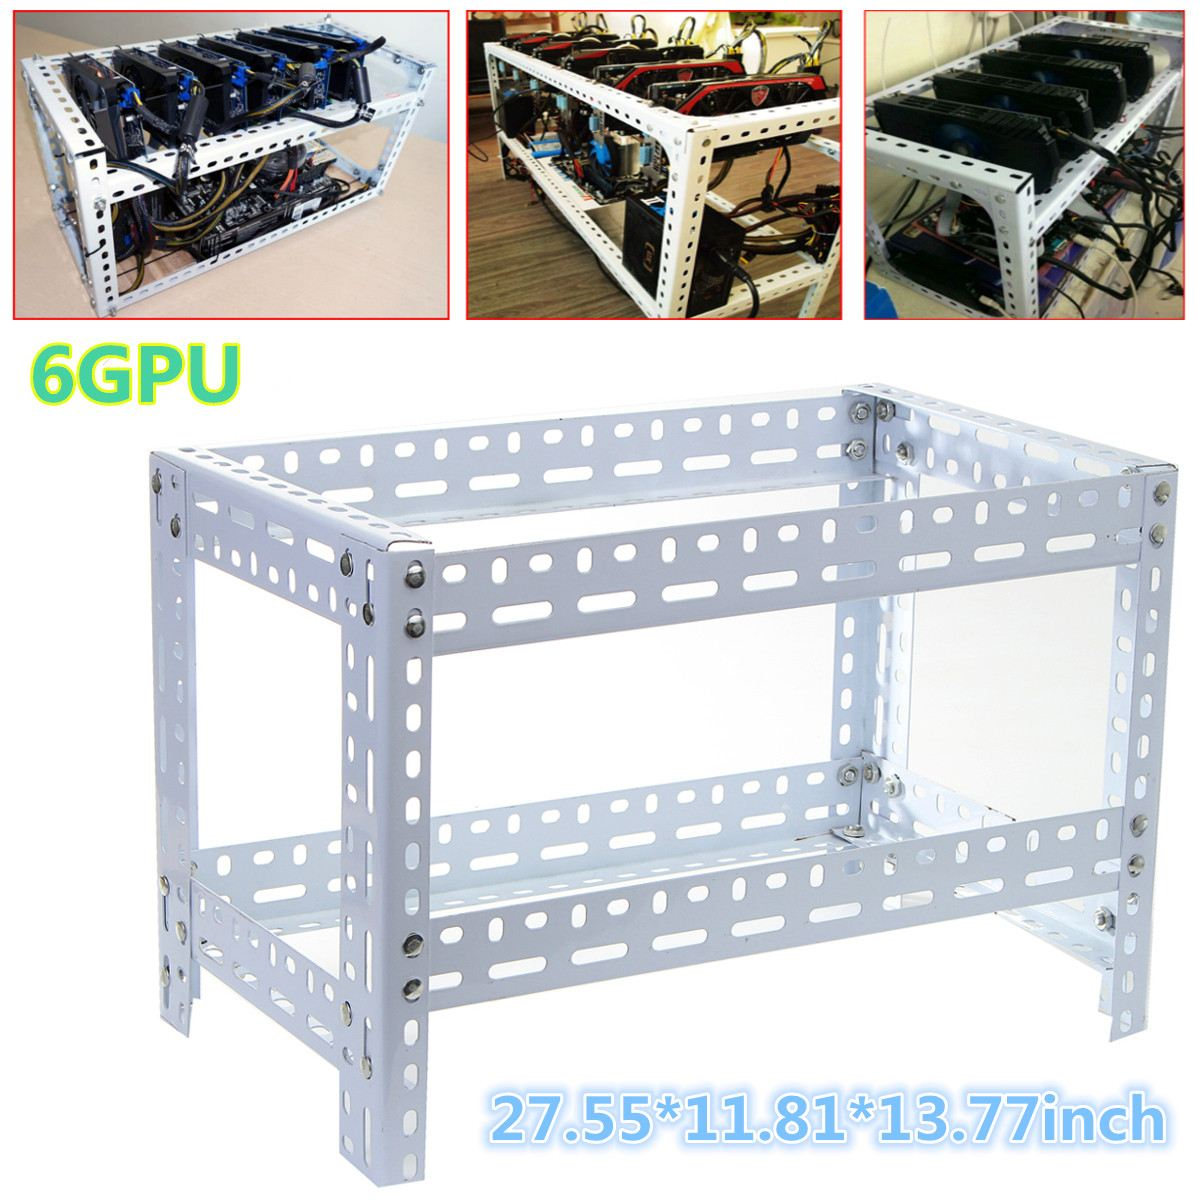 6/7/8 GPU Coin Open Air Mining Miner Frame Rig Case Holder Steel Shelf Ethereum